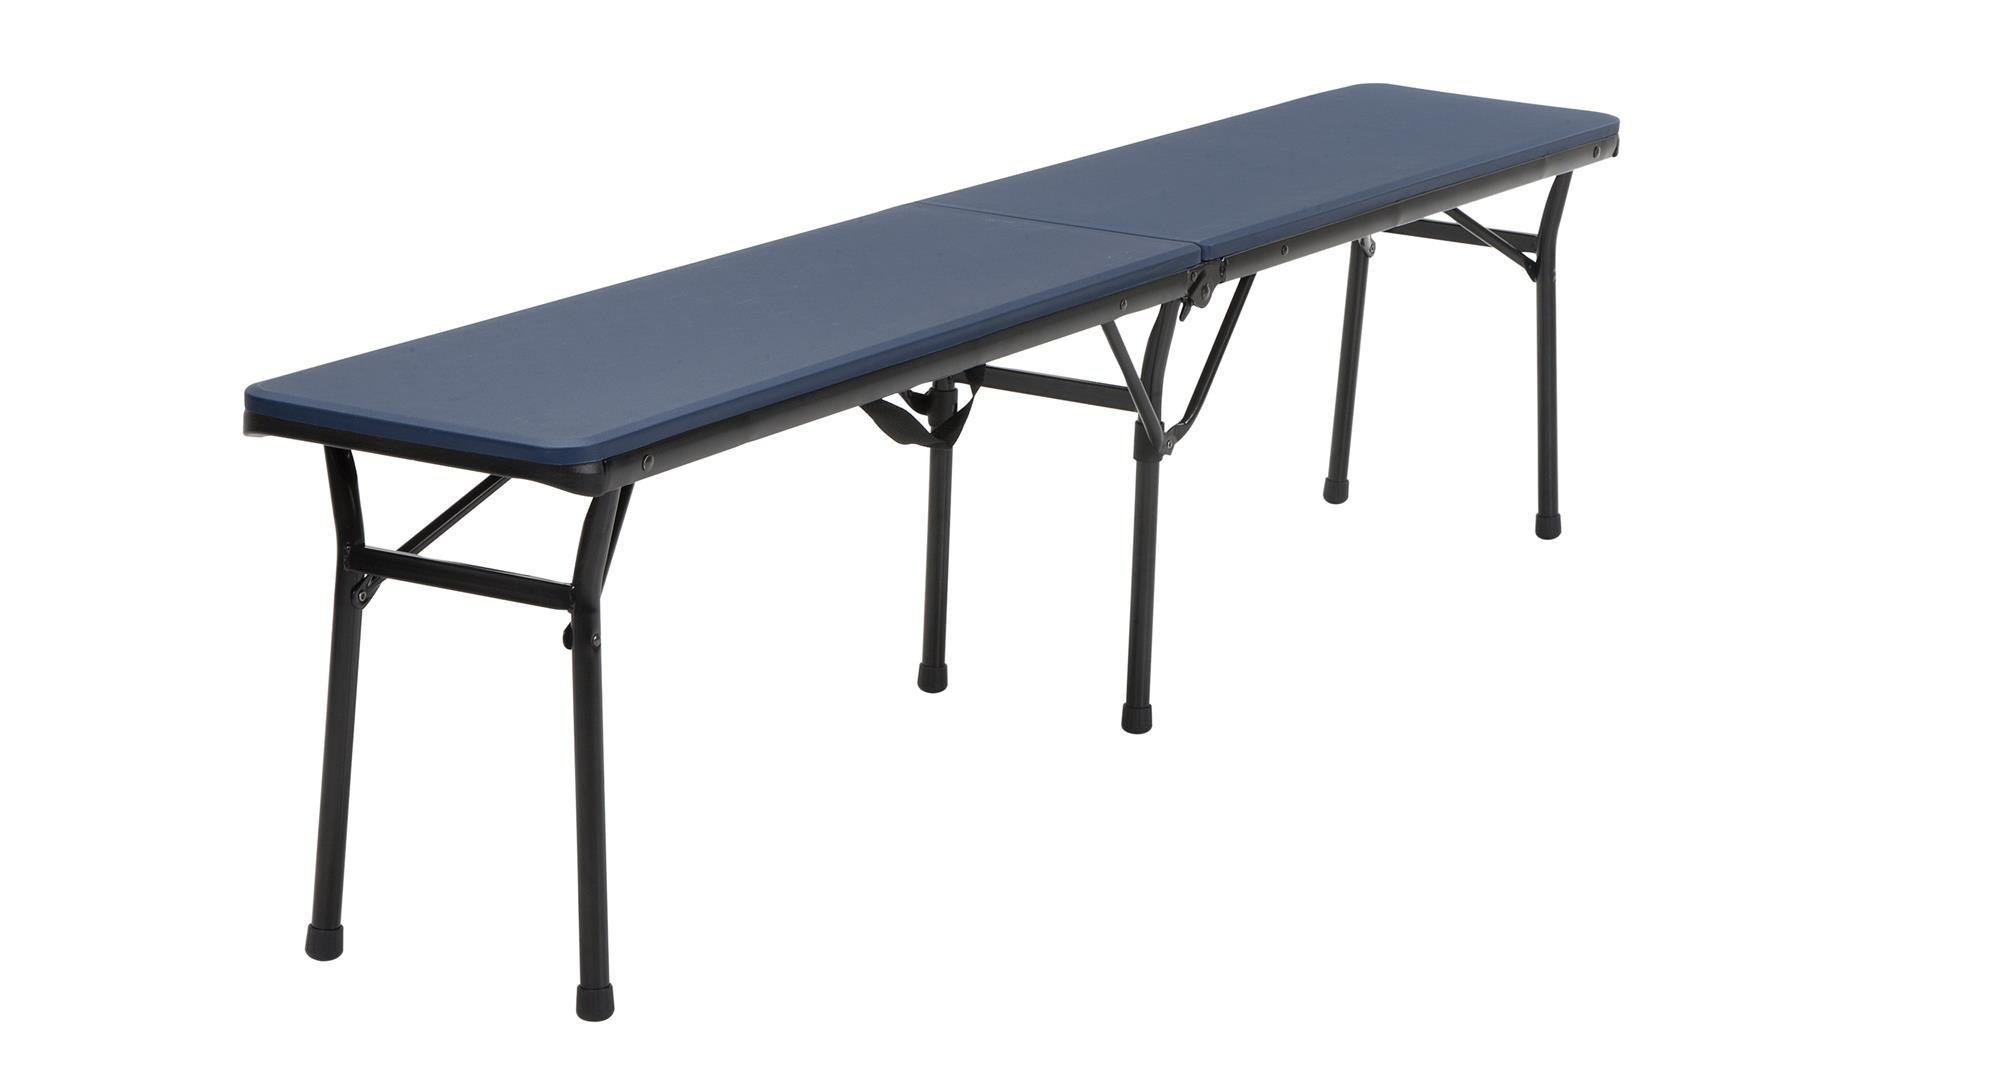 COSCO 6 ft. Indoor Outdoor Center Fold Tailgate Bench with Carrying Handle, Dark Blue Bench Top, Black Frame, 2-pack